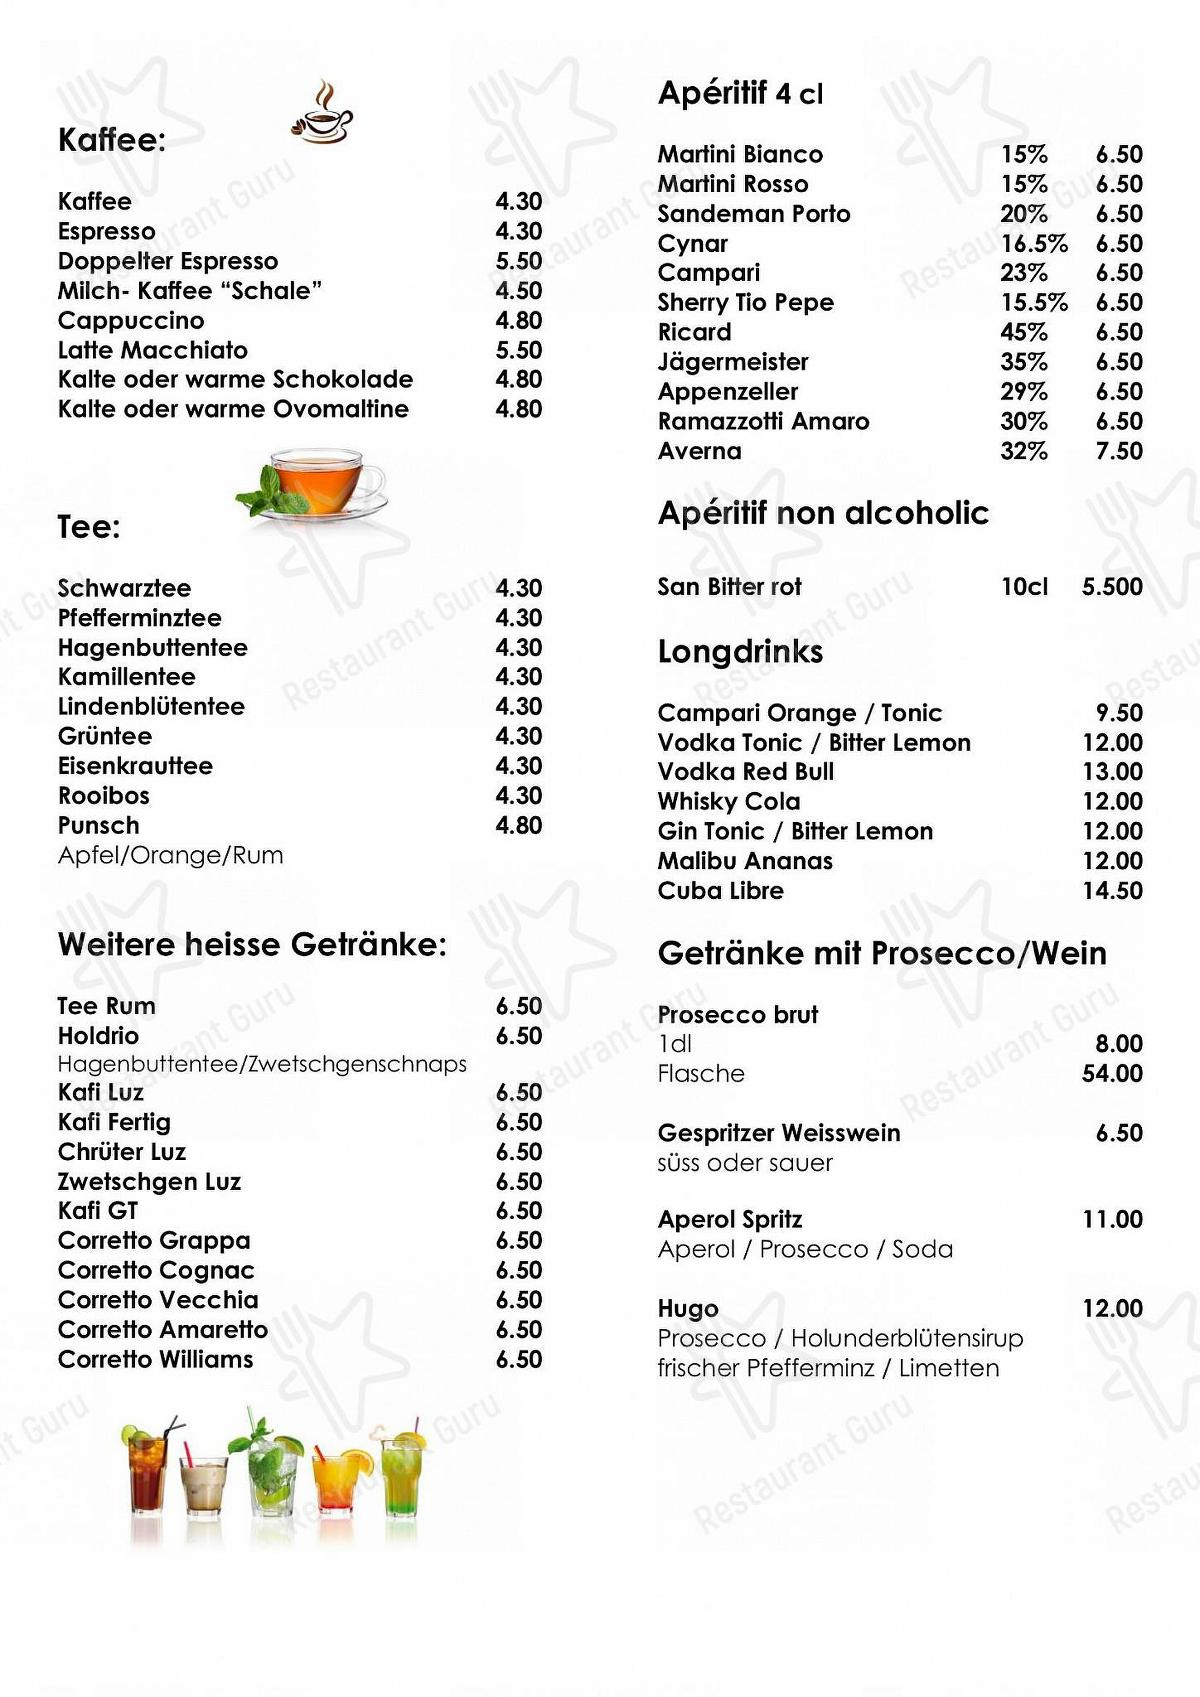 Sternen menu - dishes and beverages